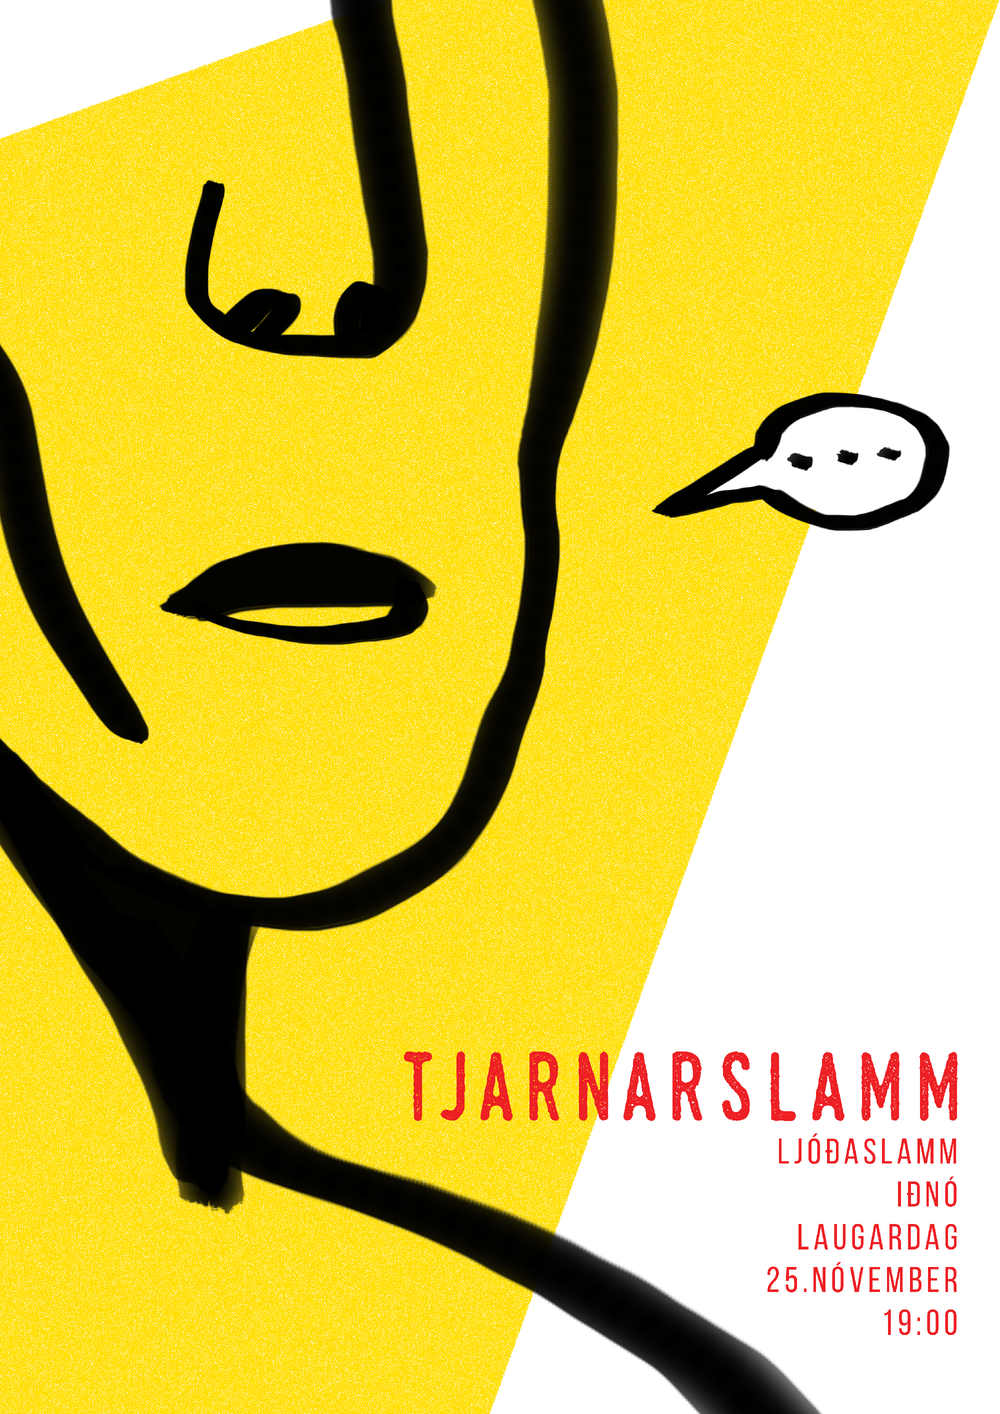 Poster done for Tjarnarslamm poetry slam.